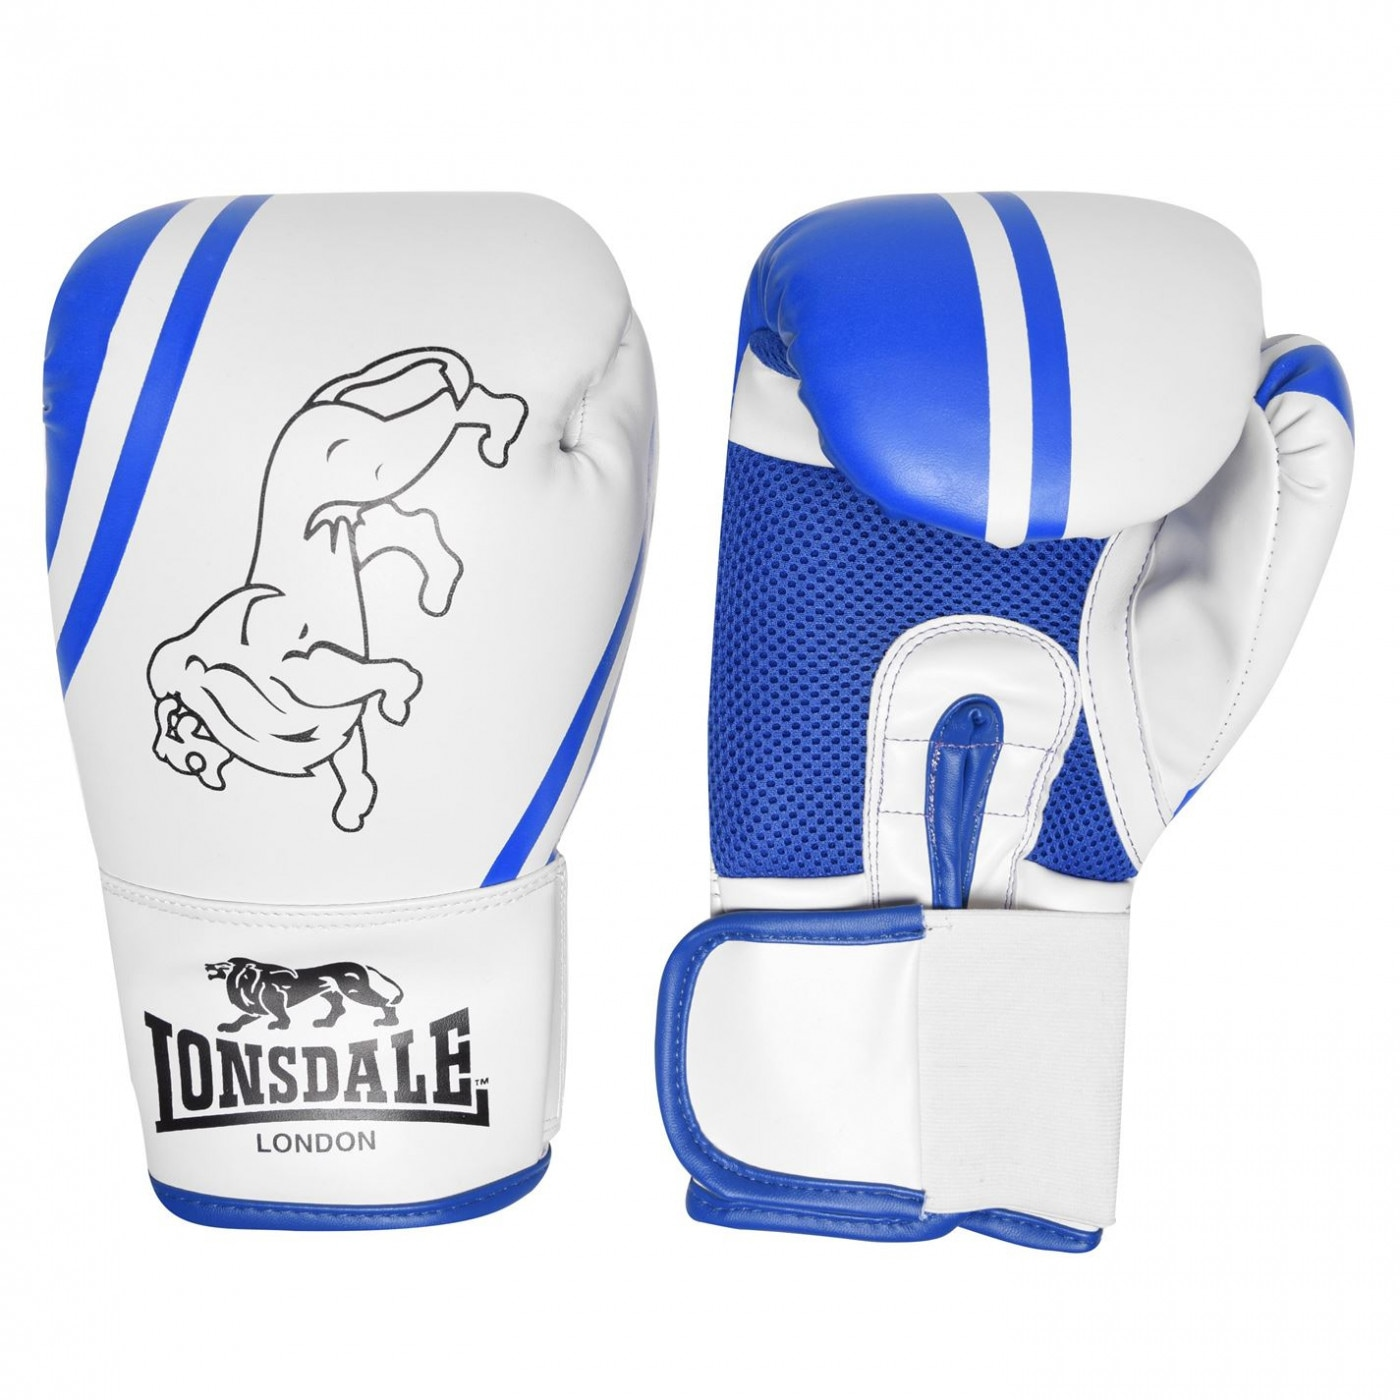 Lonsdale Club Training Gloves Unisex Adults